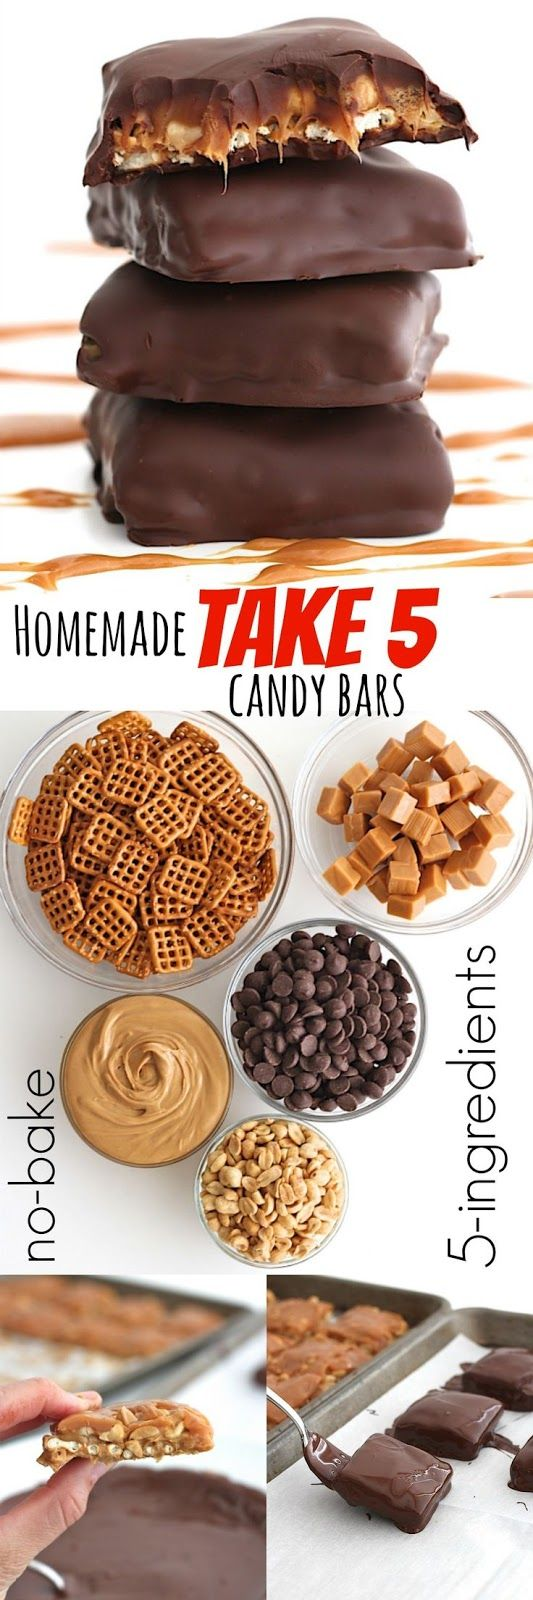 Who doesn't love chocolate, peanut butter, caramel, pretzels and peanuts? The smooth and creamy caramel and peanut butter, with the crunchy...